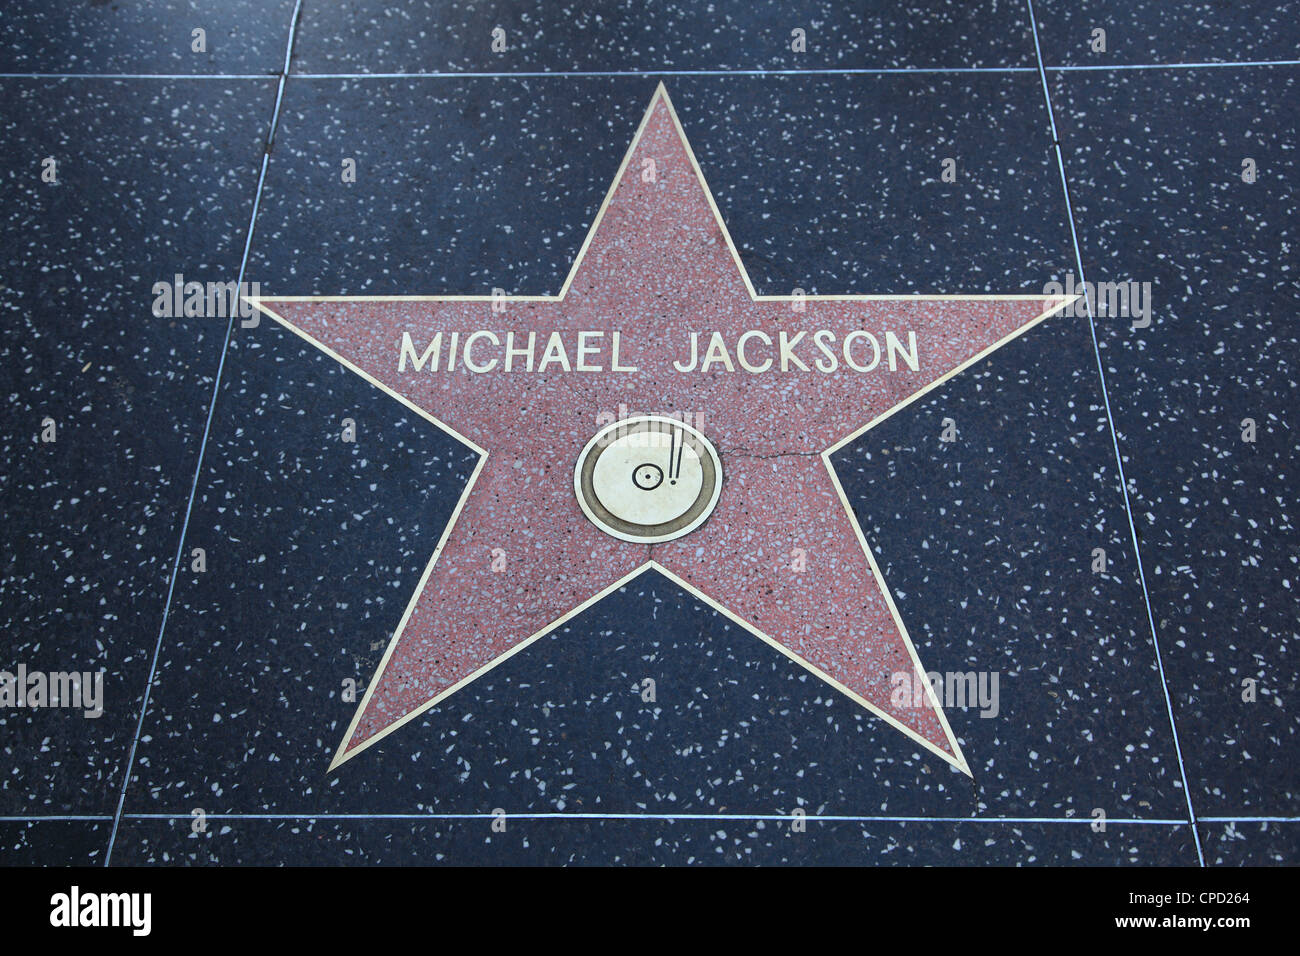 Michael Jackson, Star, Hollywood Walk of Fame, Hollywood Boulevard, Hollywood, Los Angeles, California, USA - Stock Image